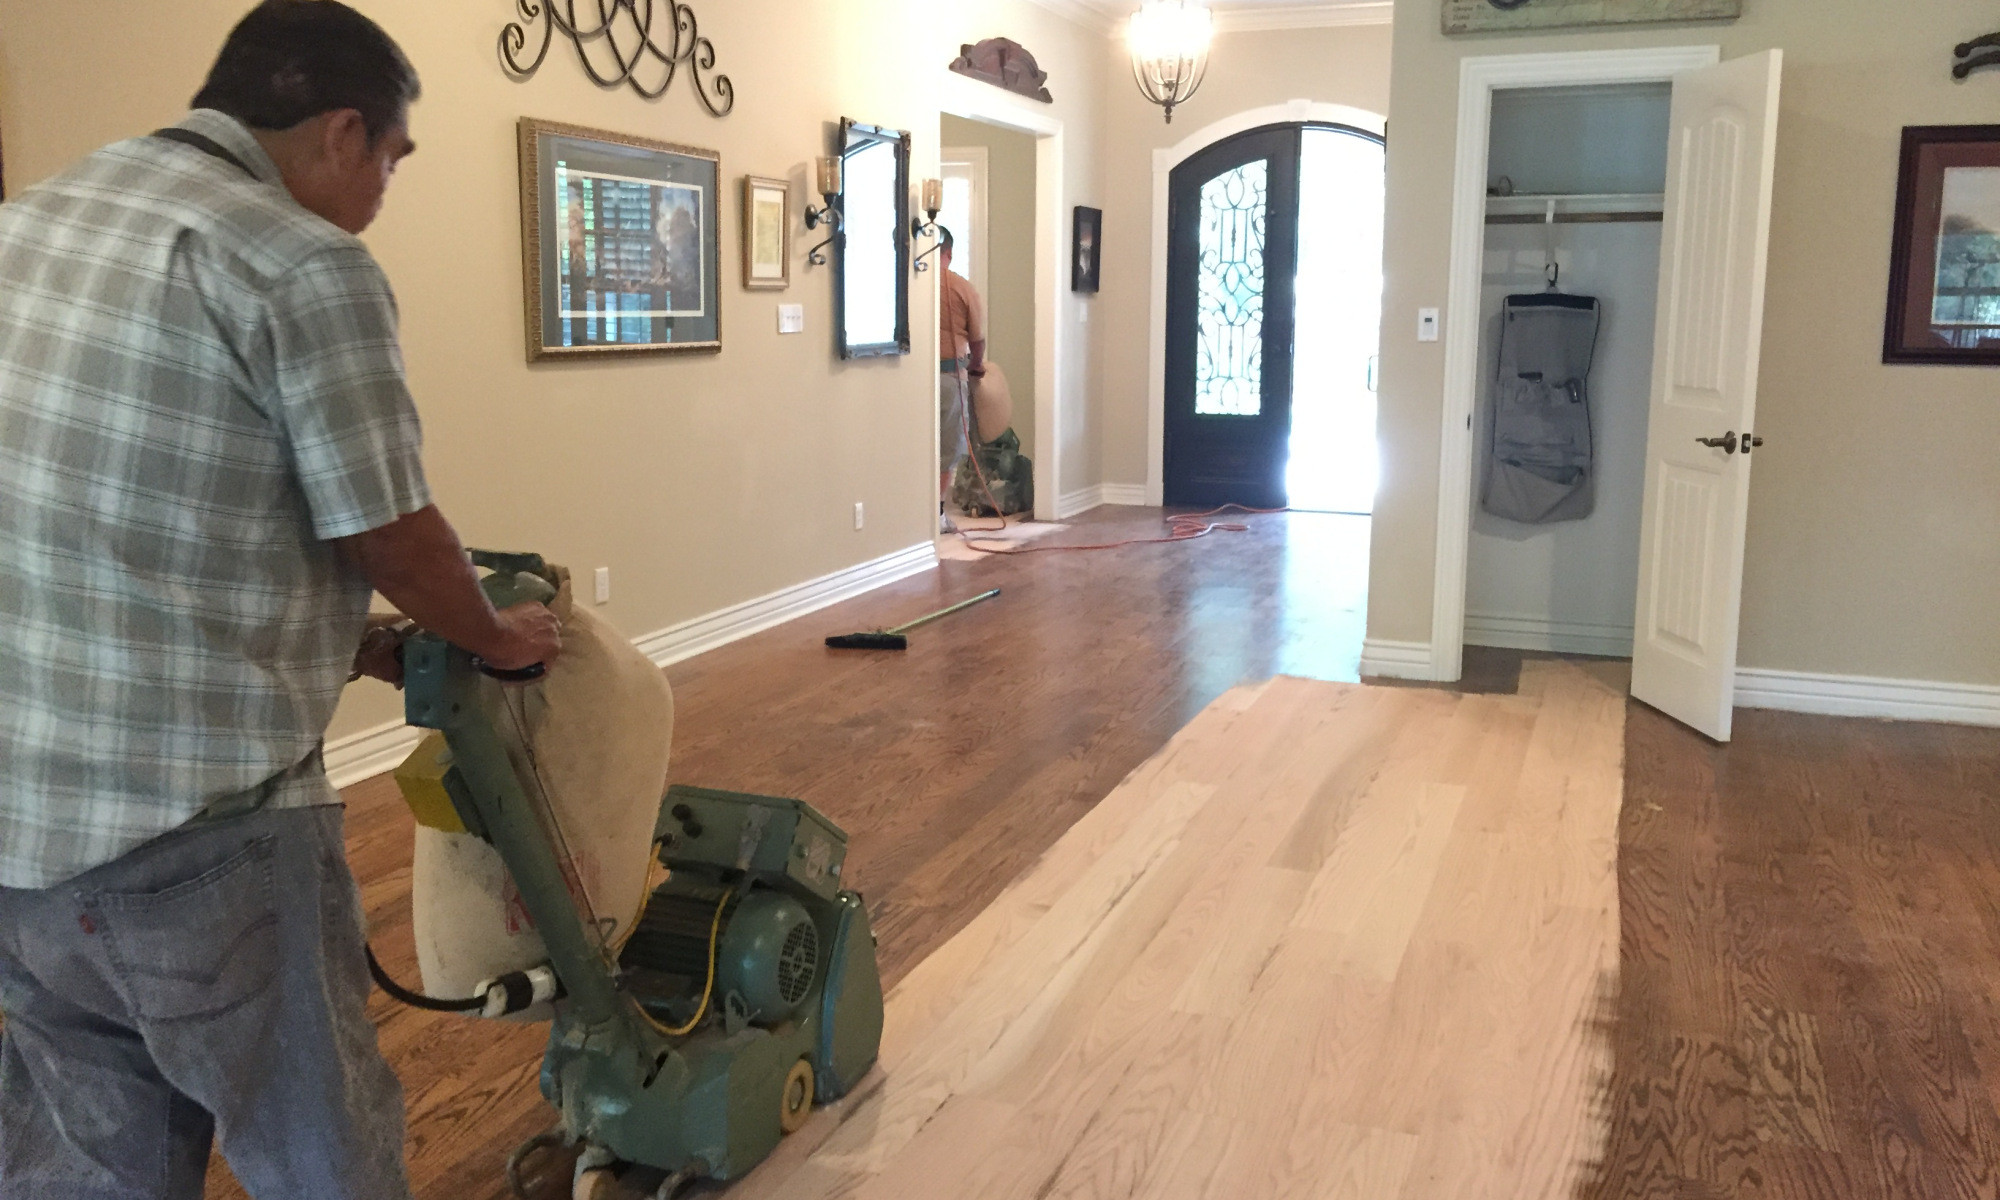 14 Lovely How to Refinish Hardwood Floors Easy 2021 free download how to refinish hardwood floors easy of refinishing hardwood flooring company in when it comes to refinishing wood floors its not always as easy as you would think there is a lot of inconven